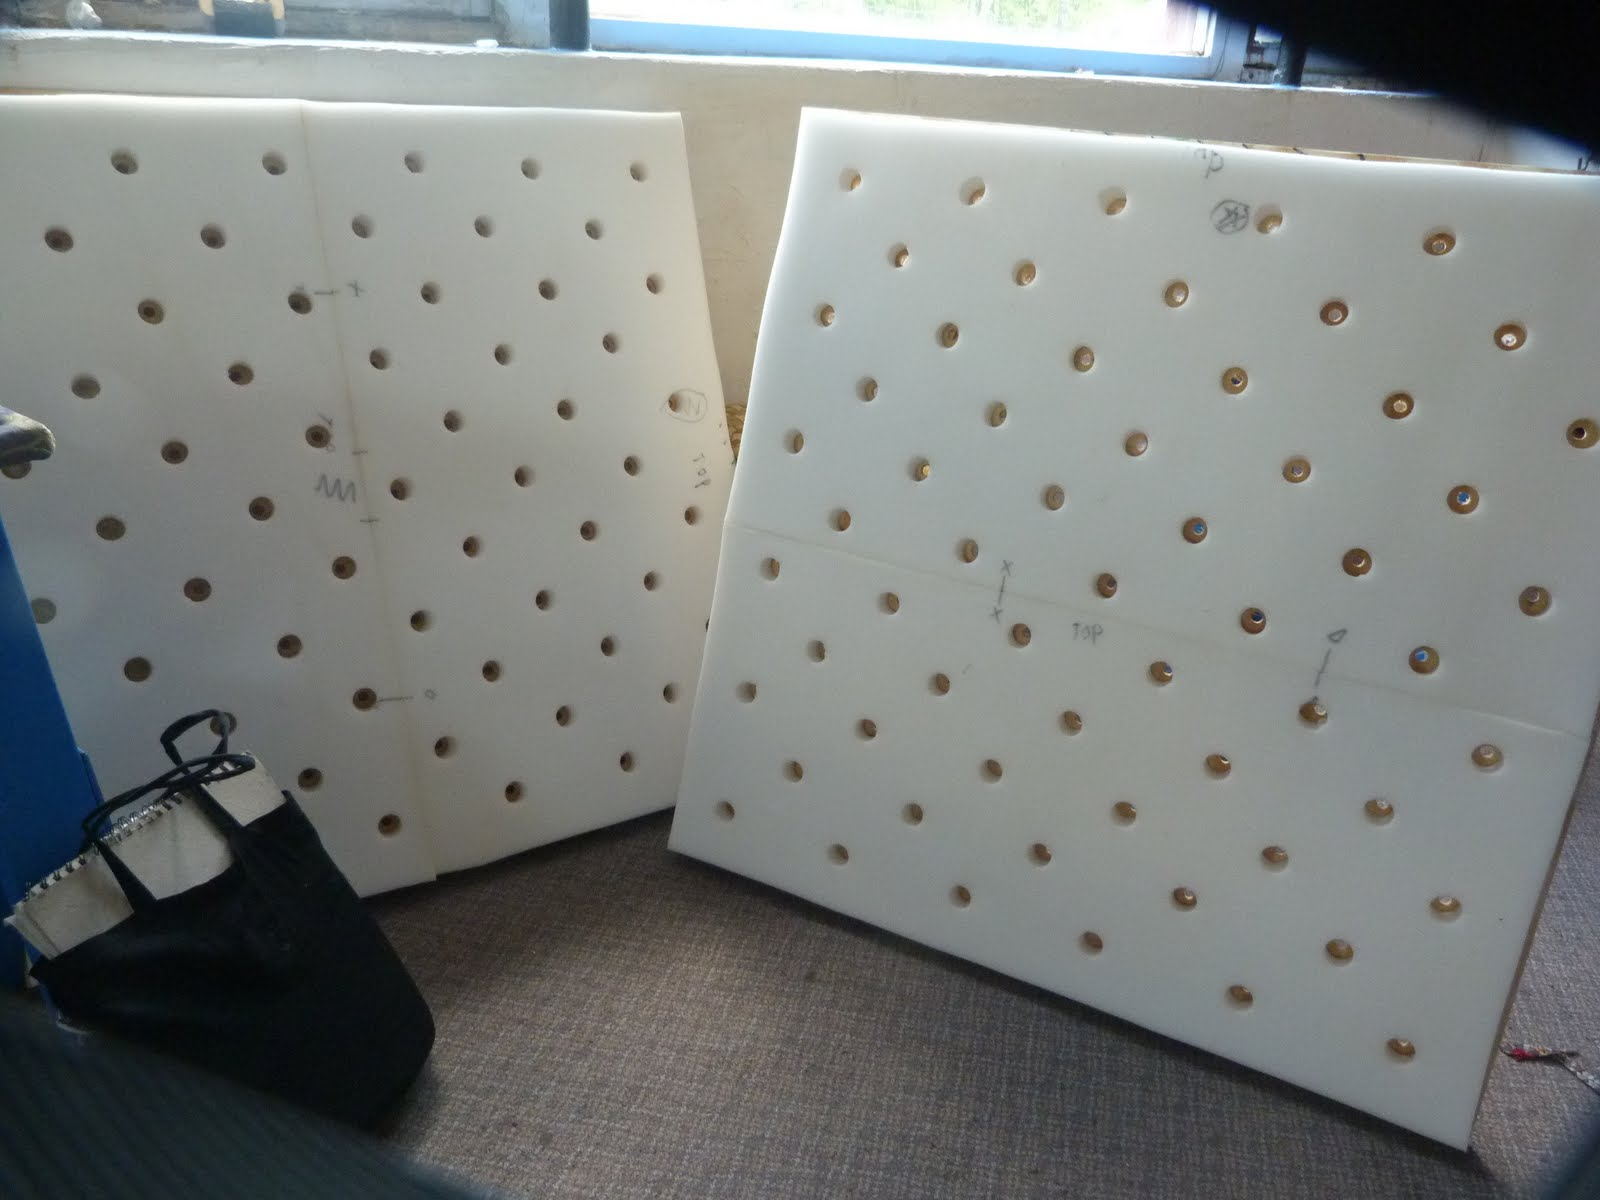 Practical Upholstery Design Studio: Upholstered walls